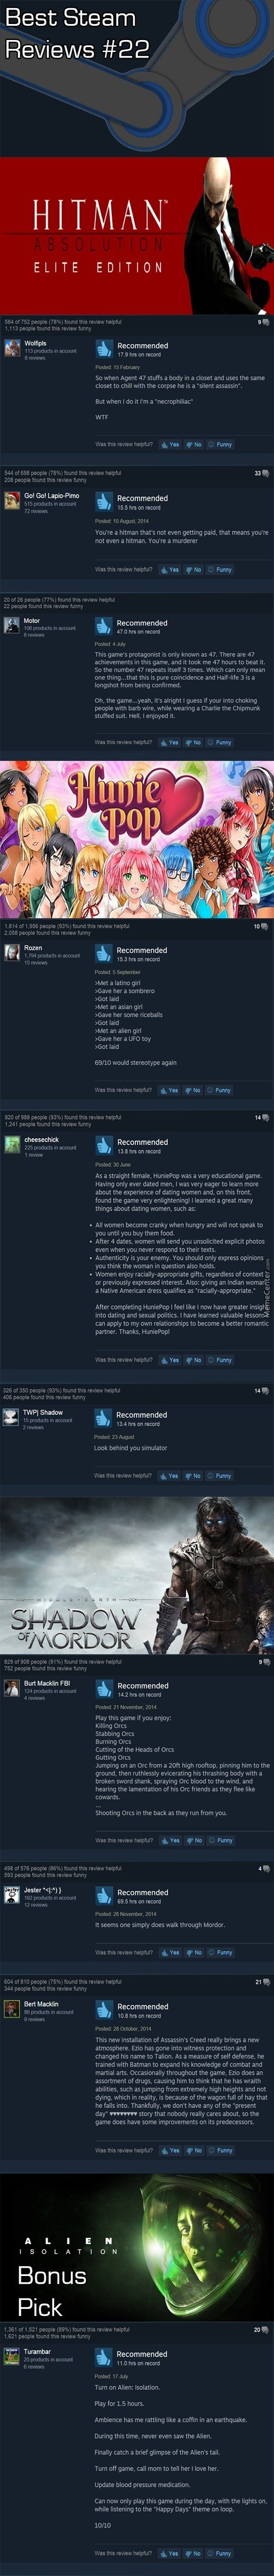 Best Steam Reviews #22- Agent 47 Plays Bejeweled To Seduce Animu Grills While Hiding From Spooky Scary Aliens In Mordor